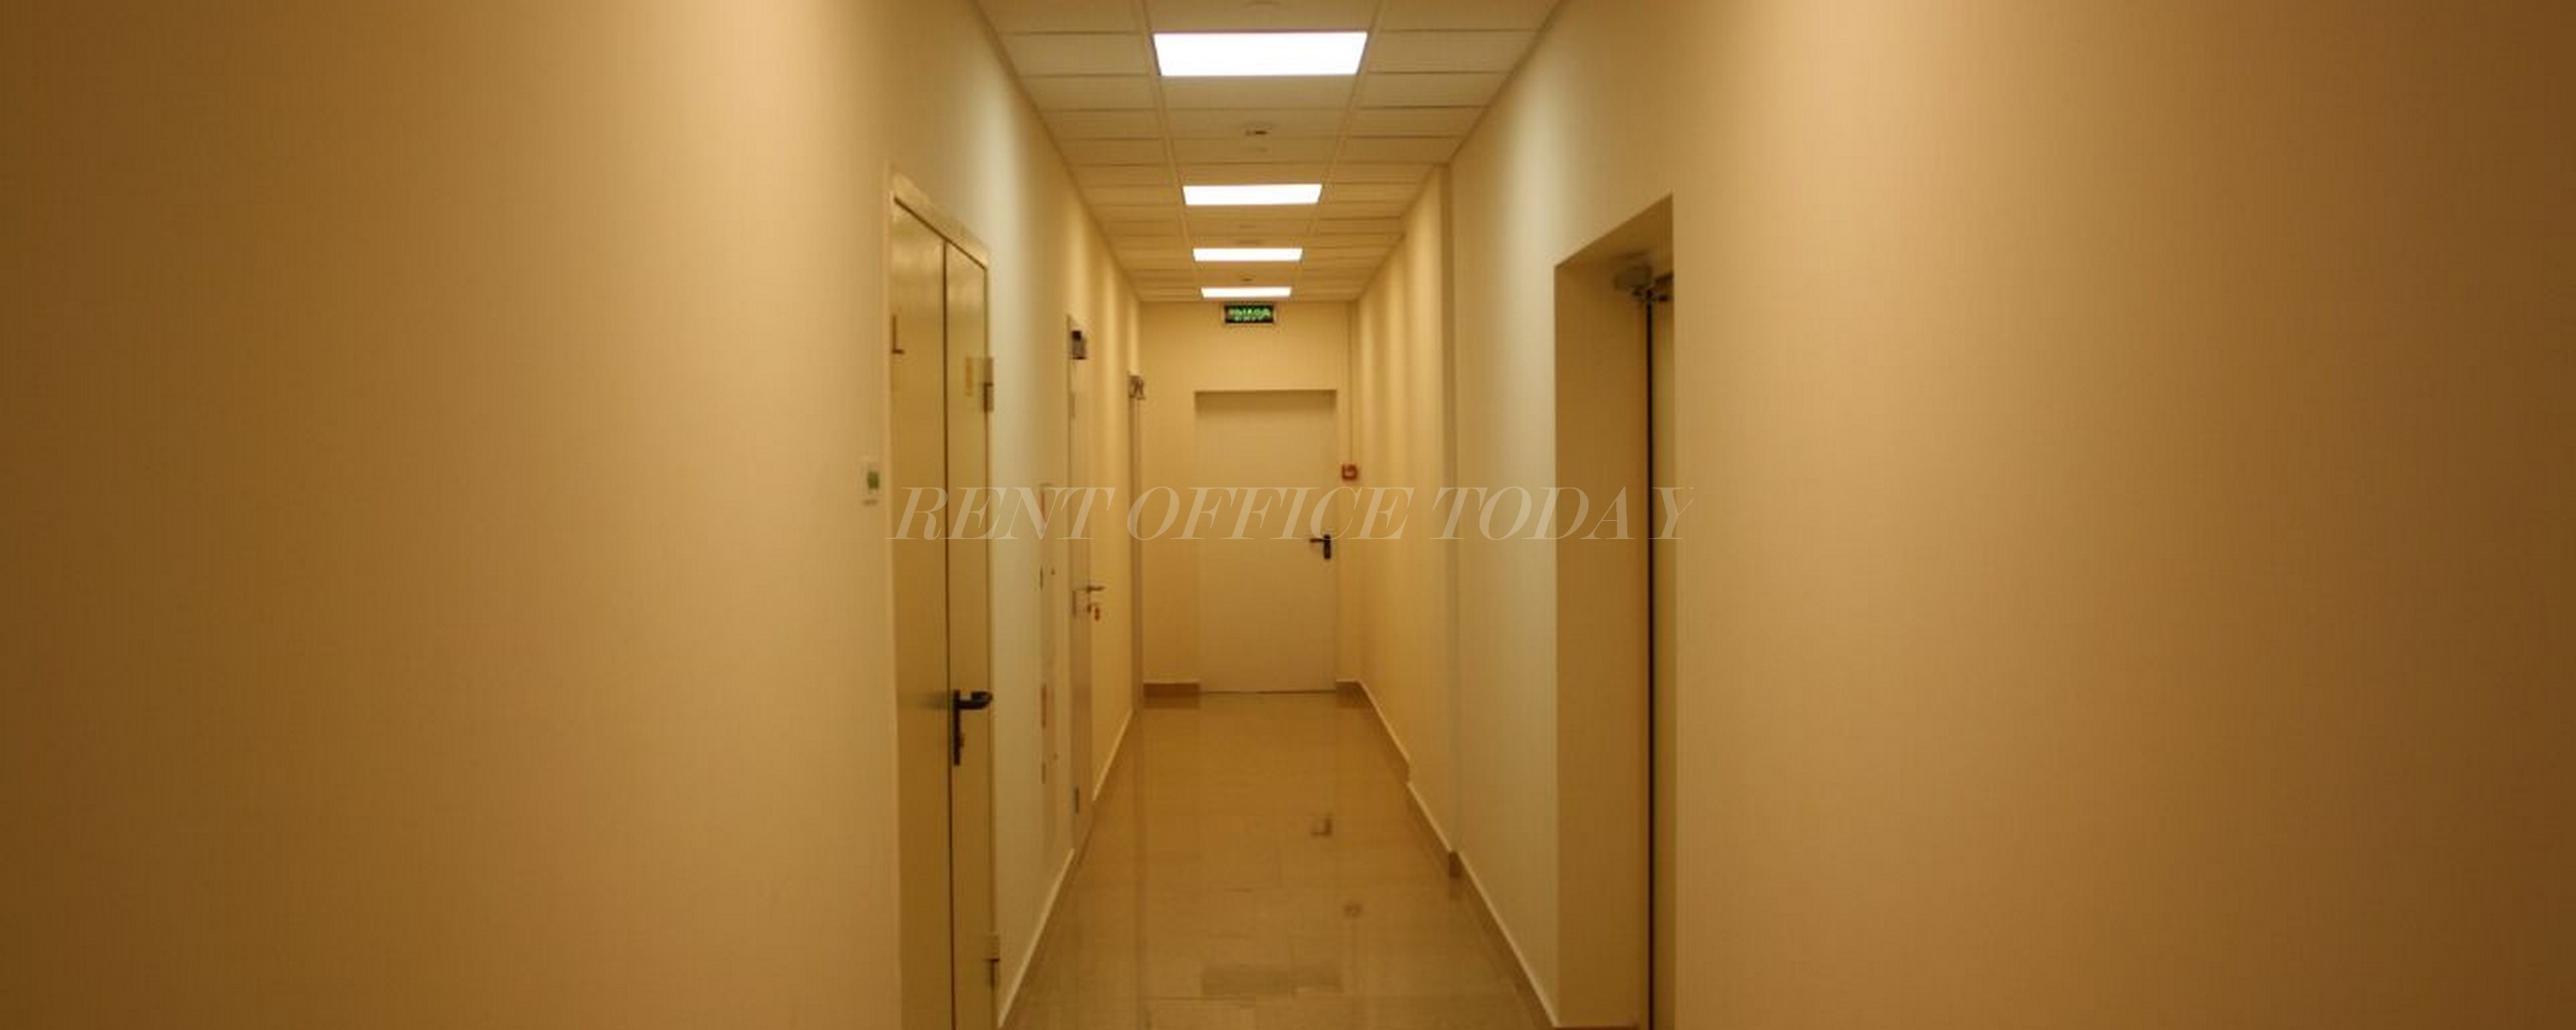 office rent poklonka place-25